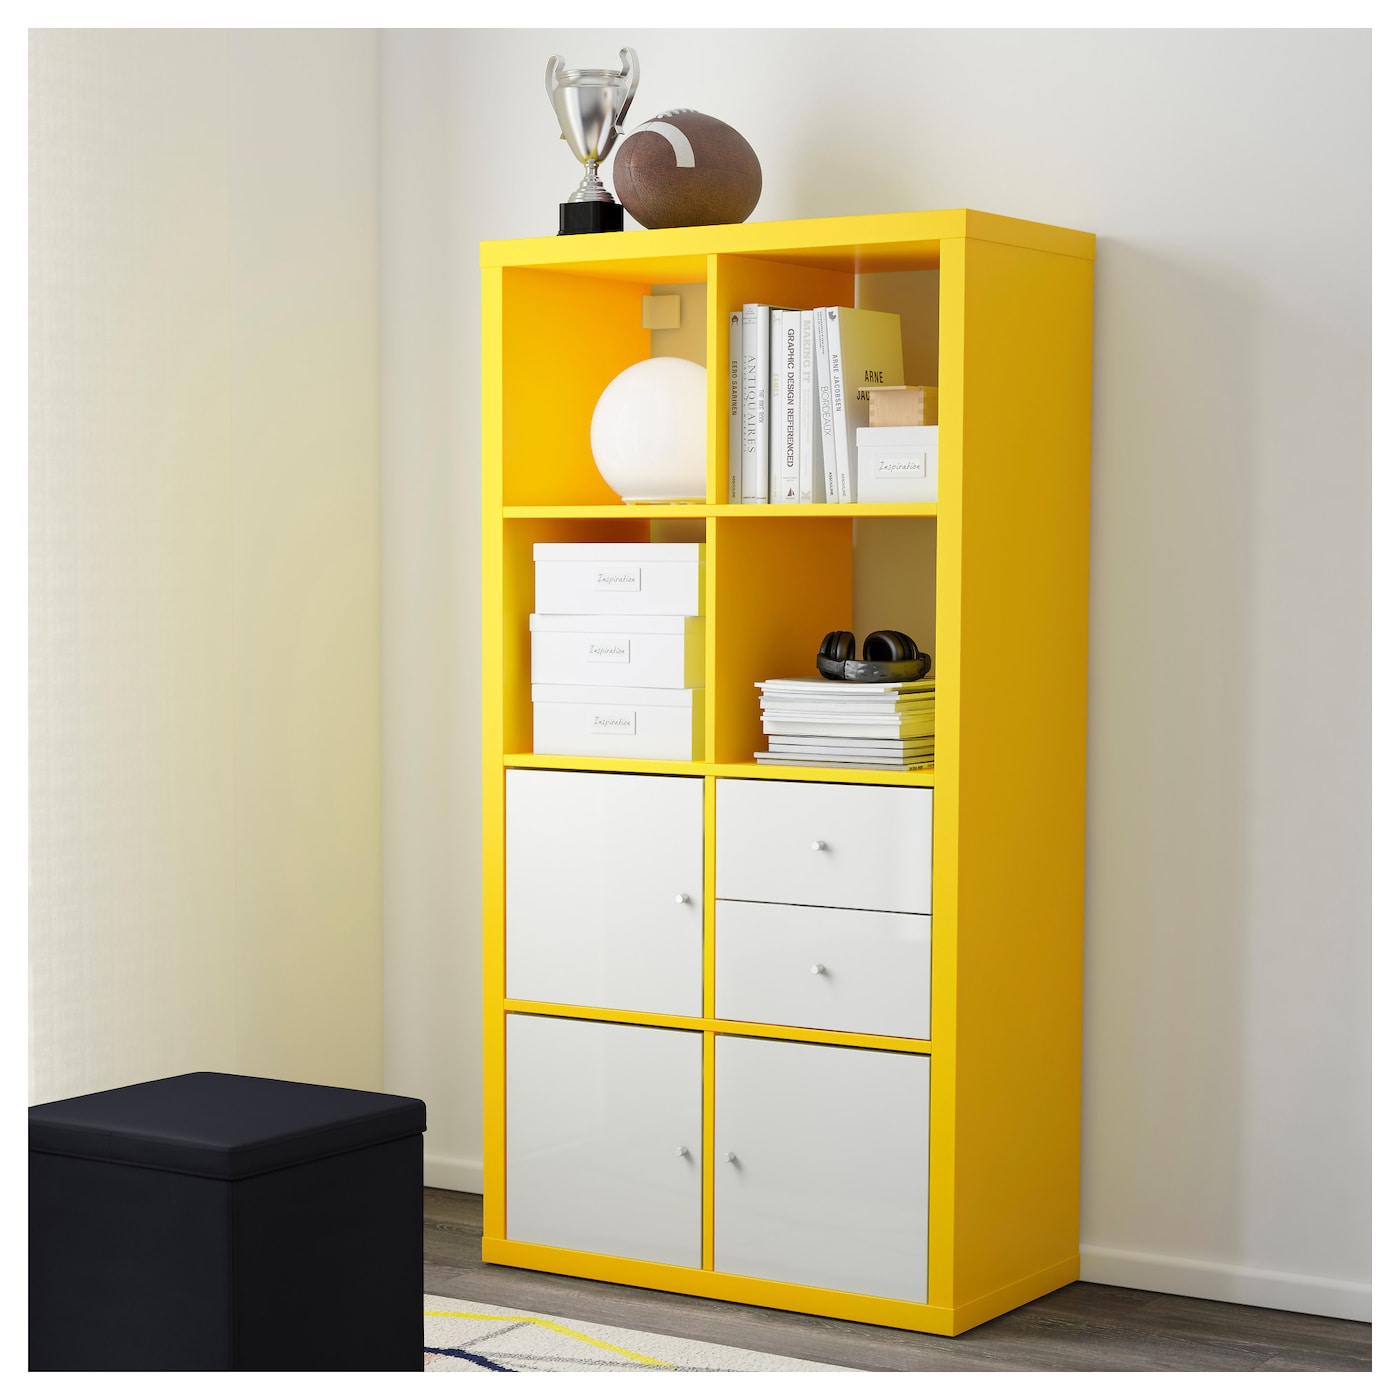 kallax shelving unit yellow 77 x 147 cm ikea. Black Bedroom Furniture Sets. Home Design Ideas